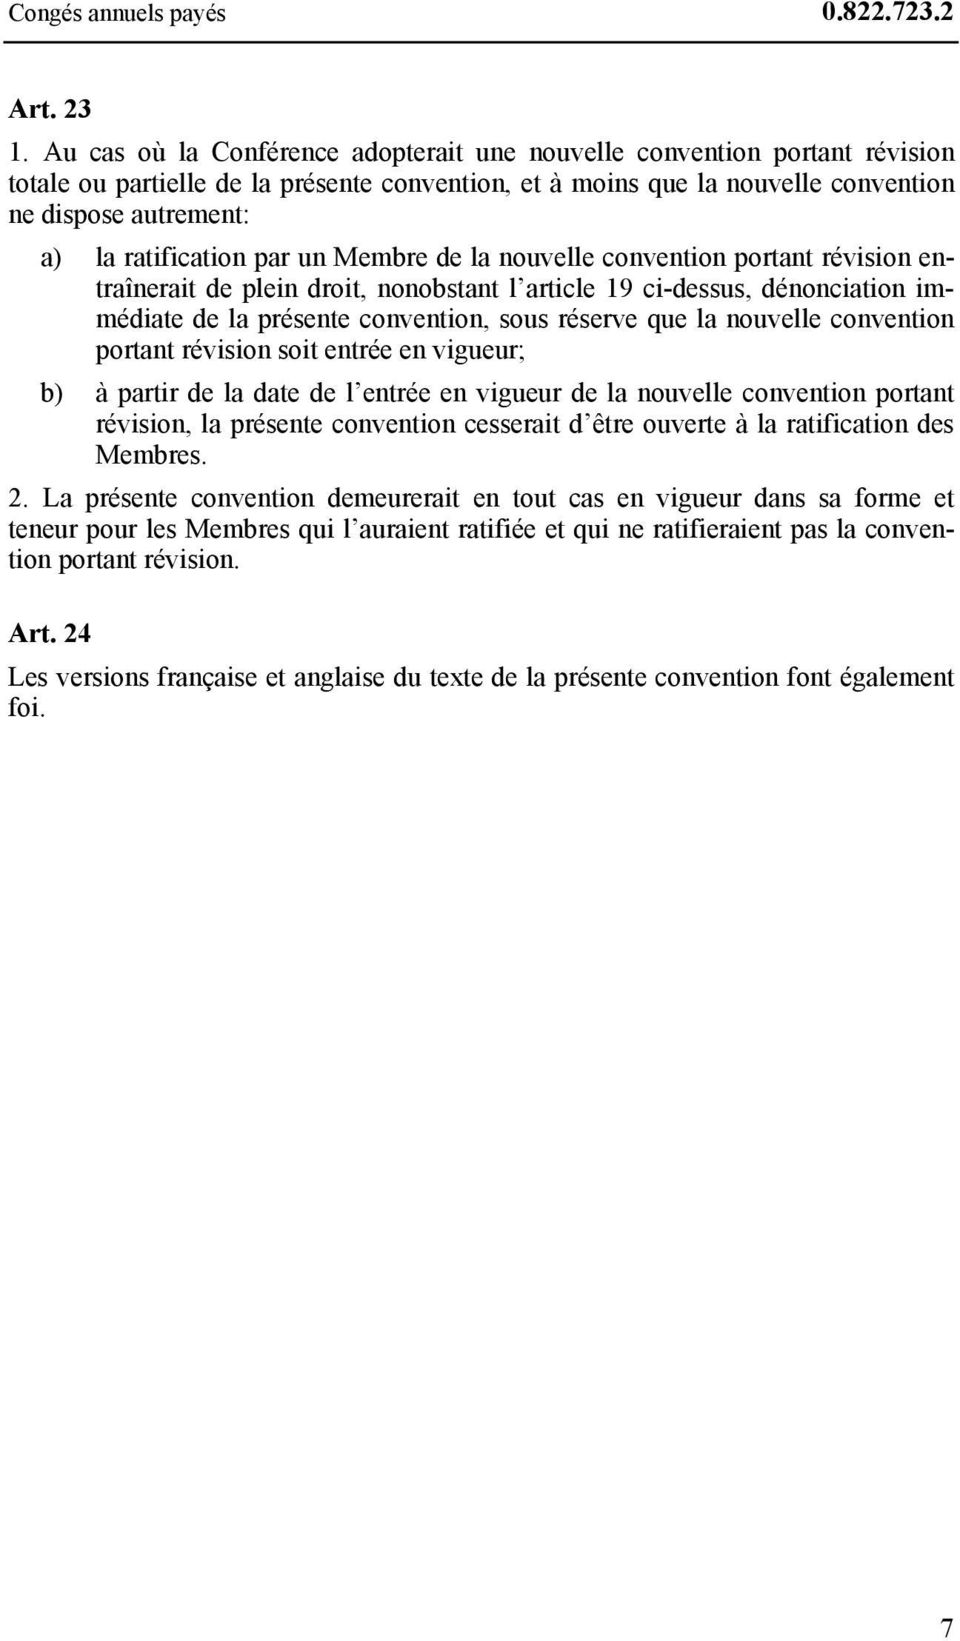 ratification par un Membre de la nouvelle convention portant révision entraînerait de plein droit, nonobstant l article 19 ci-dessus, dénonciation immédiate de la présente convention, sous réserve